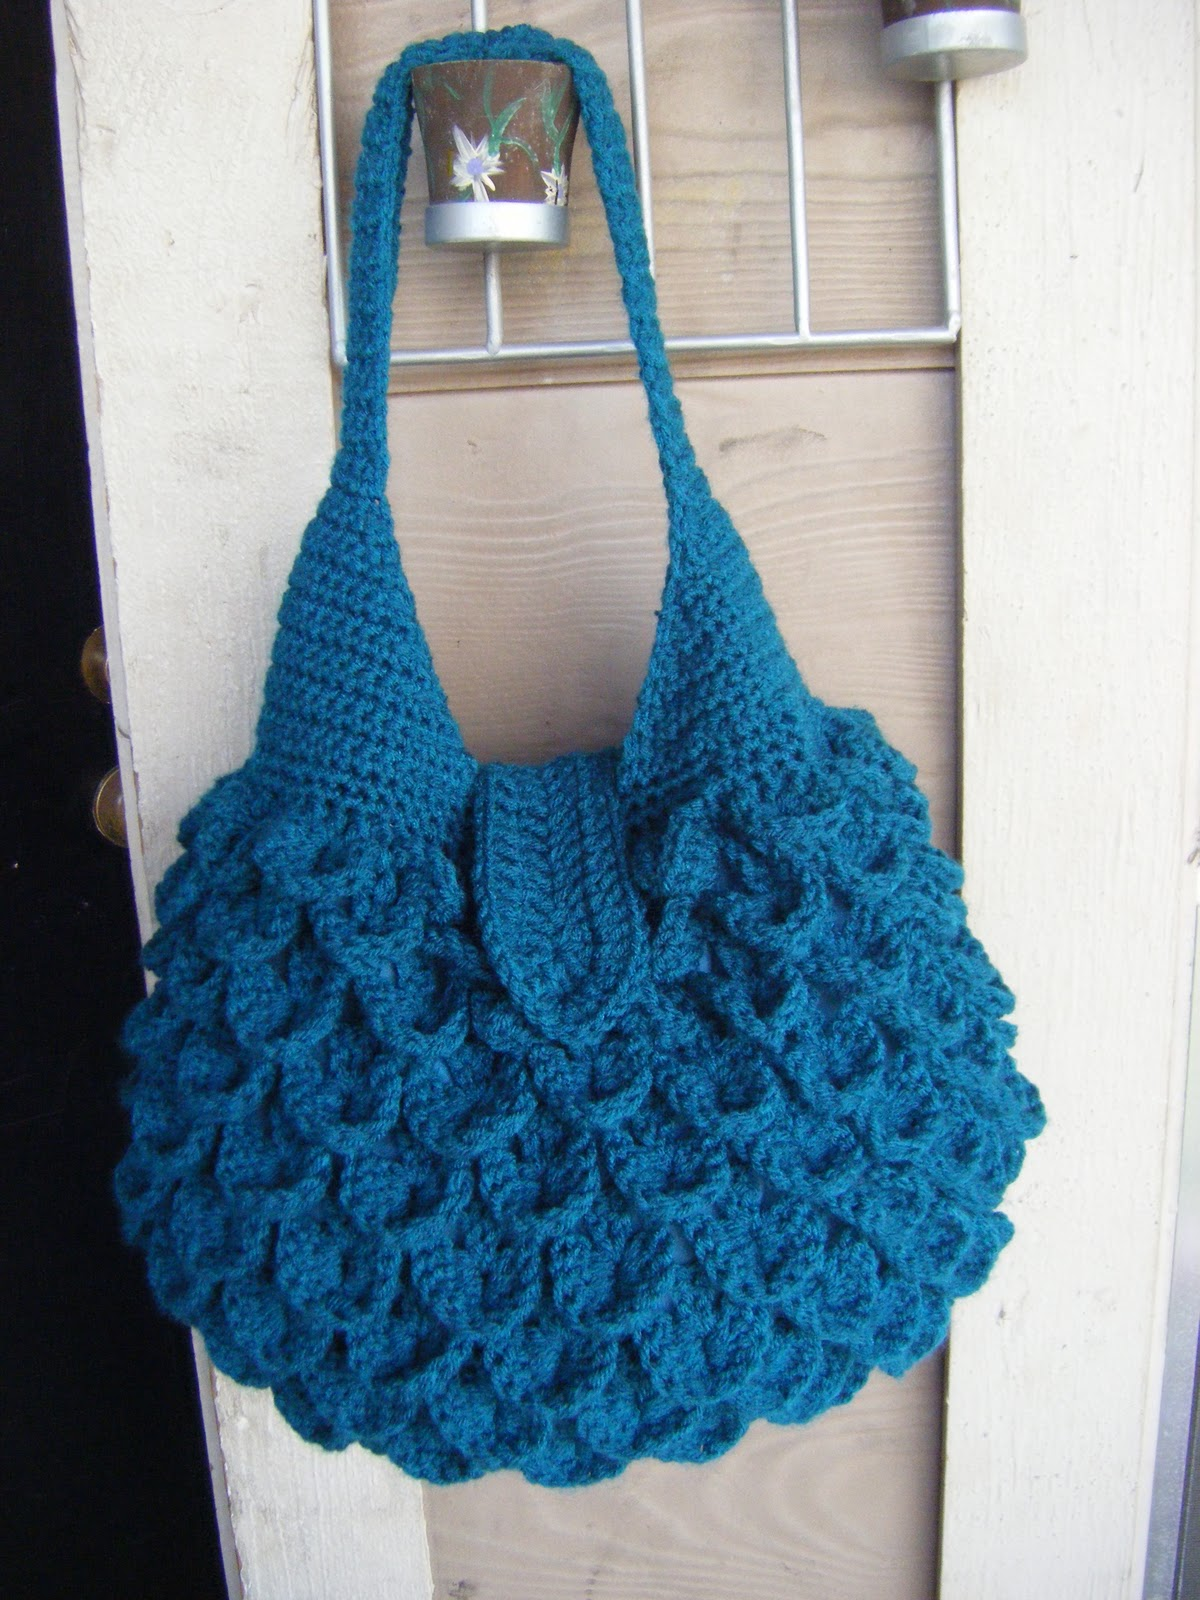 Crochet Bag With Pockets Pattern : Best Patterns: Crocodile Crochet Bag PATTERN